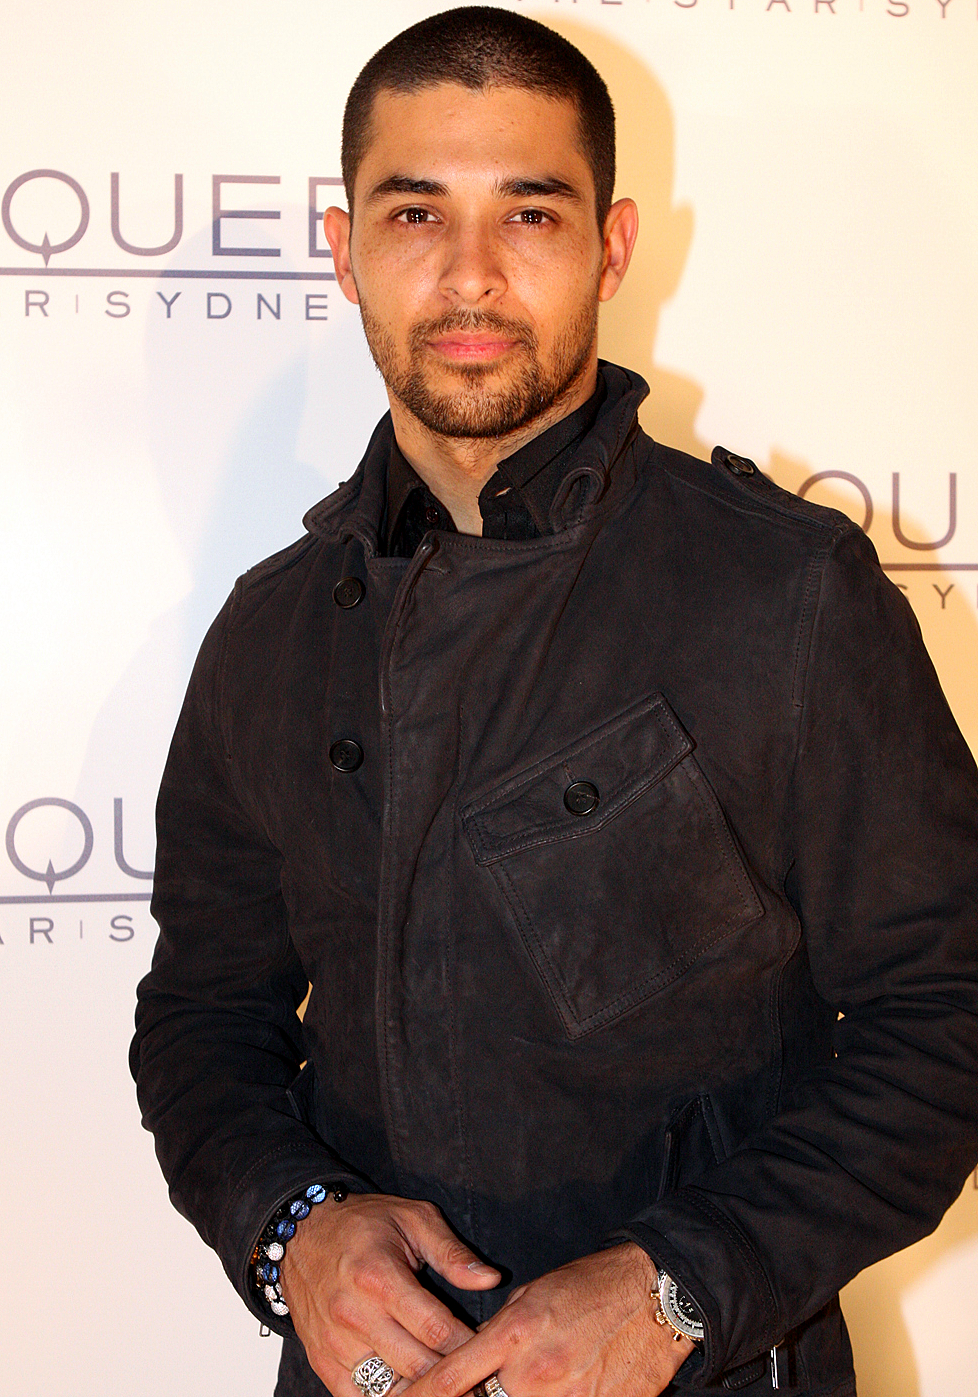 Wilmer Valderrama earned a  million dollar salary, leaving the net worth at 18 million in 2017